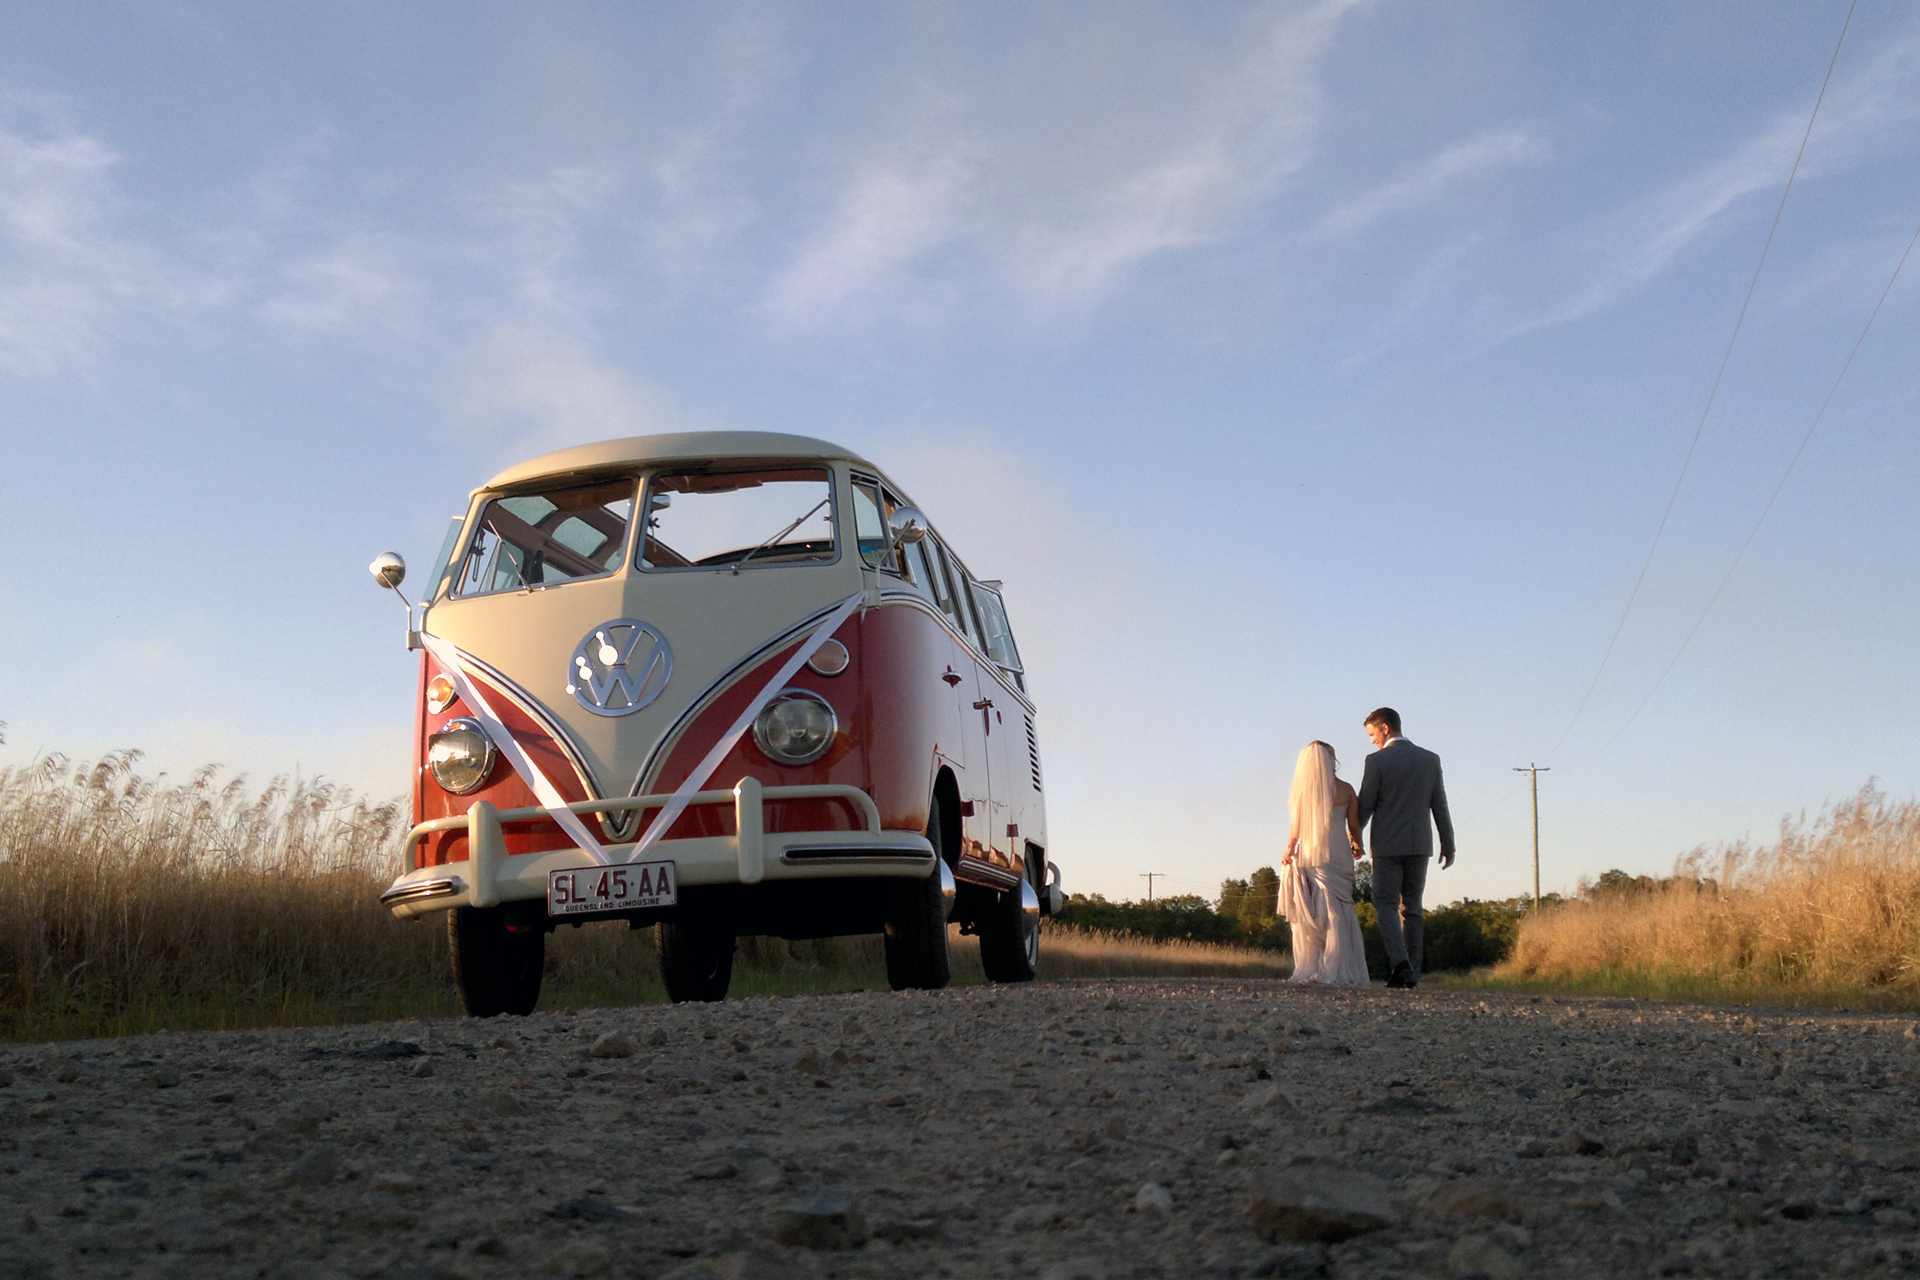 Newly weds enjoy Sunset with VW wedding transport.